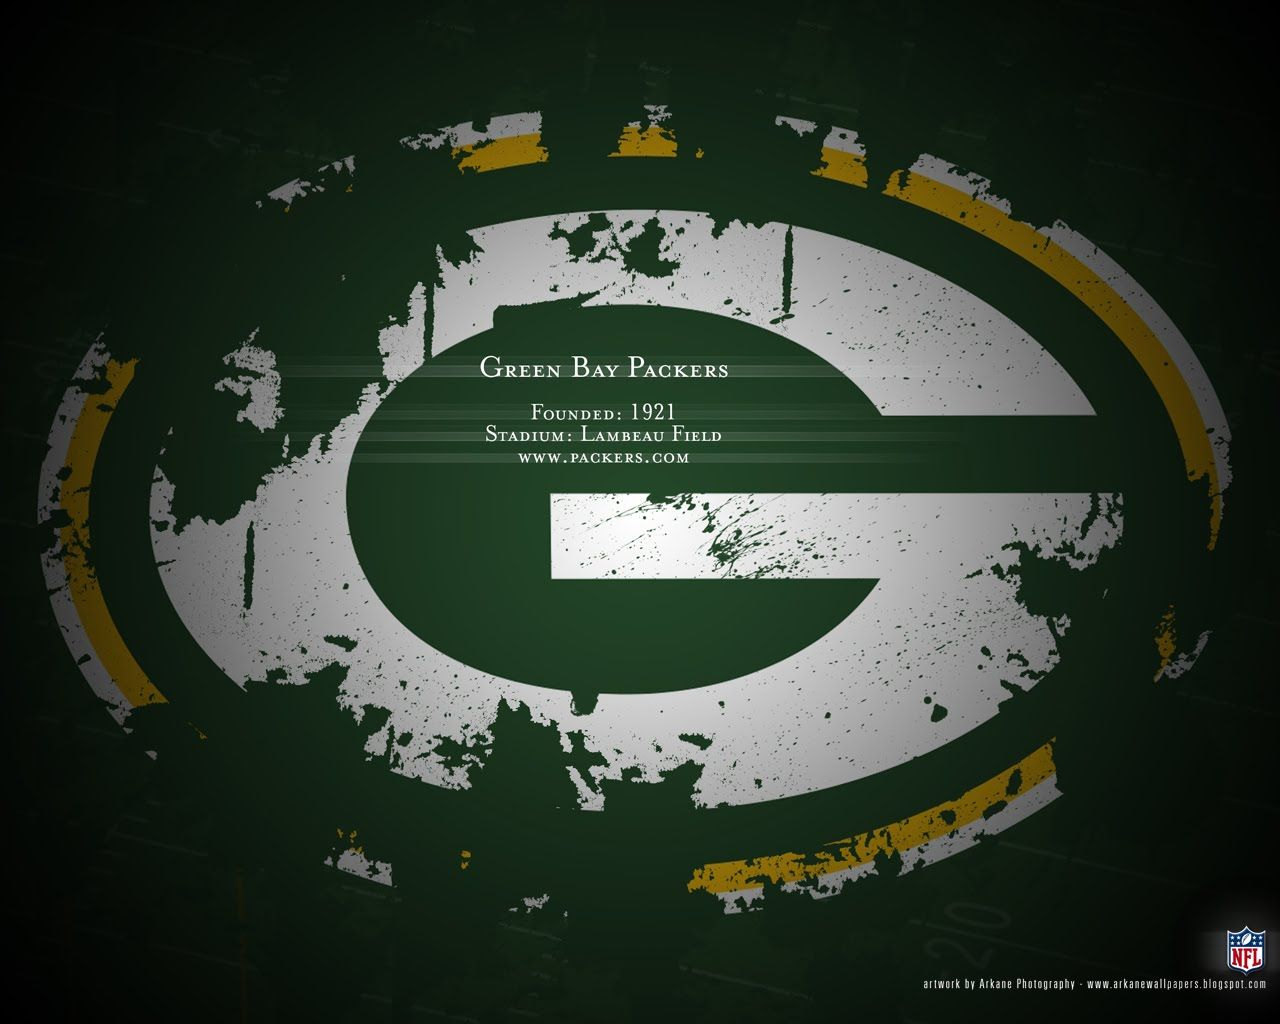 Arkane Nfl Wallpapers Profile Green Bay Packers Green Bay Packers Green Bay Packers Wallpaper Green Bay